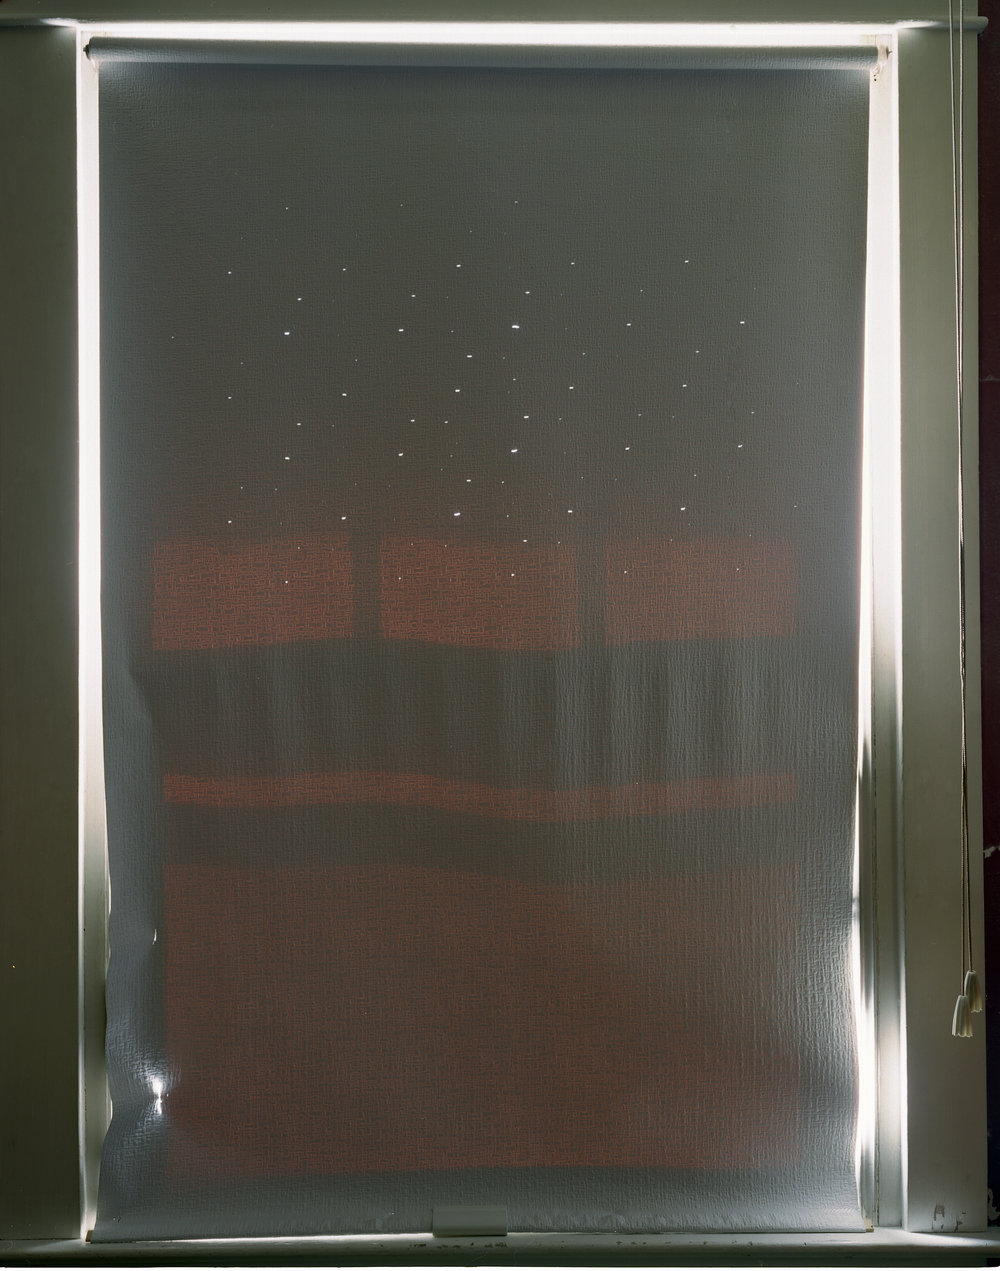 Window shade, PA, 2007